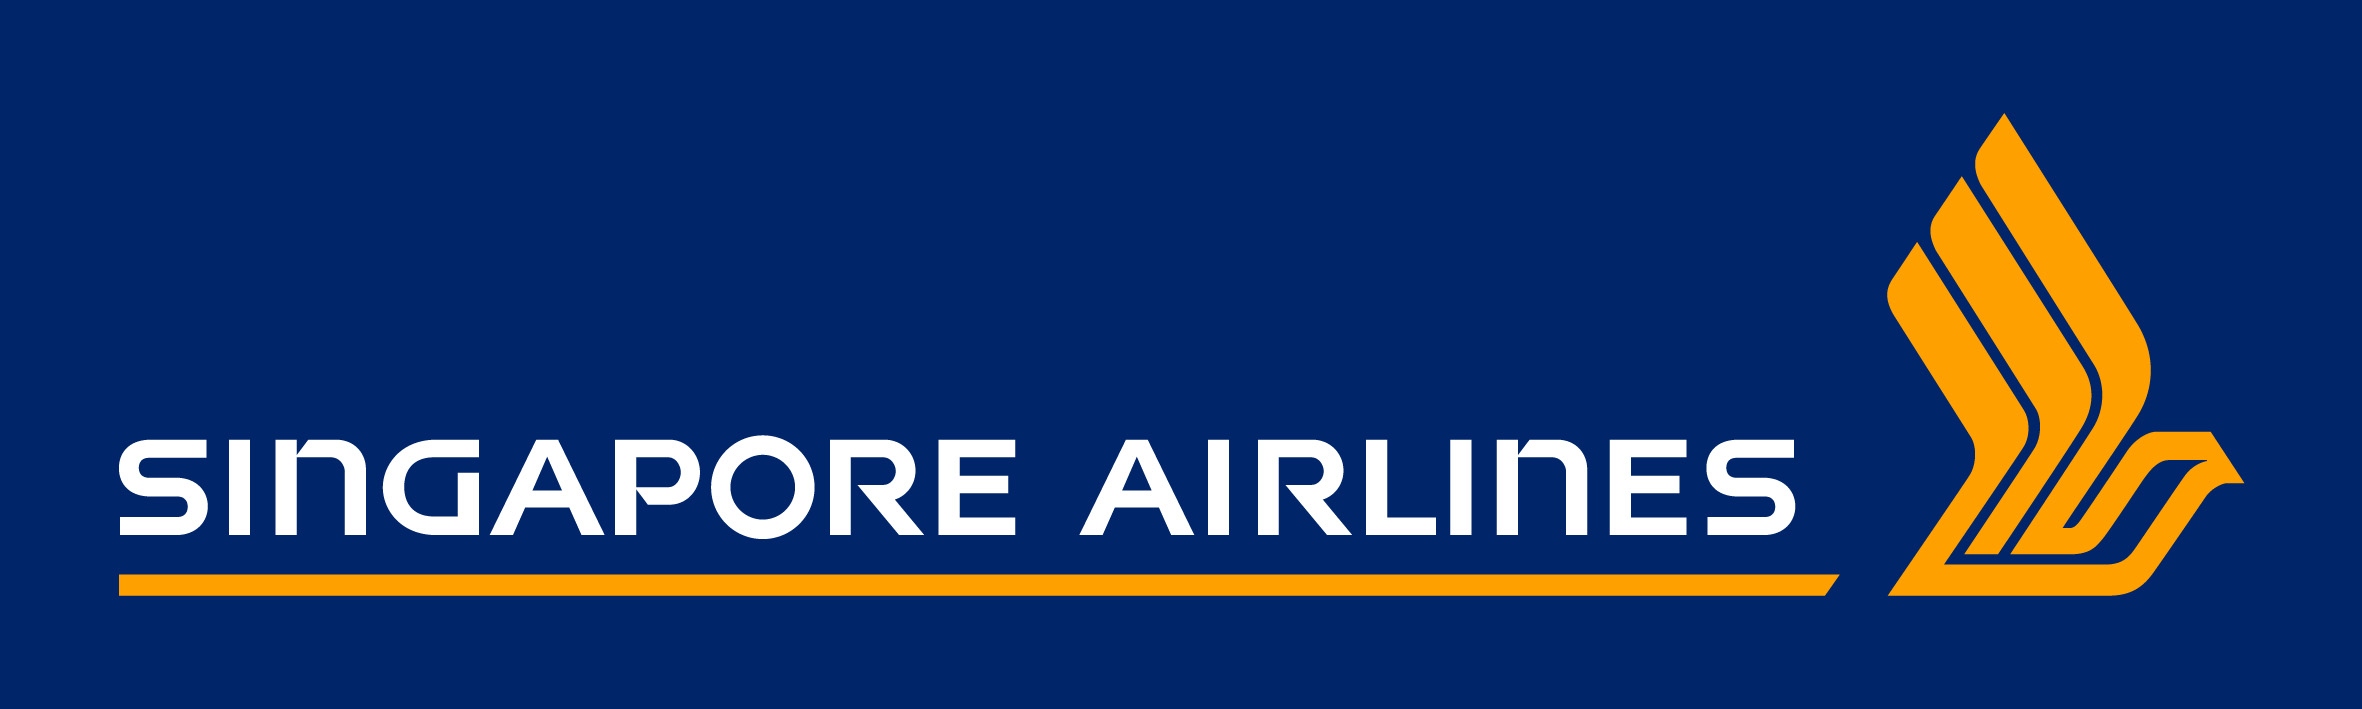 Image result for logo singapore airlines